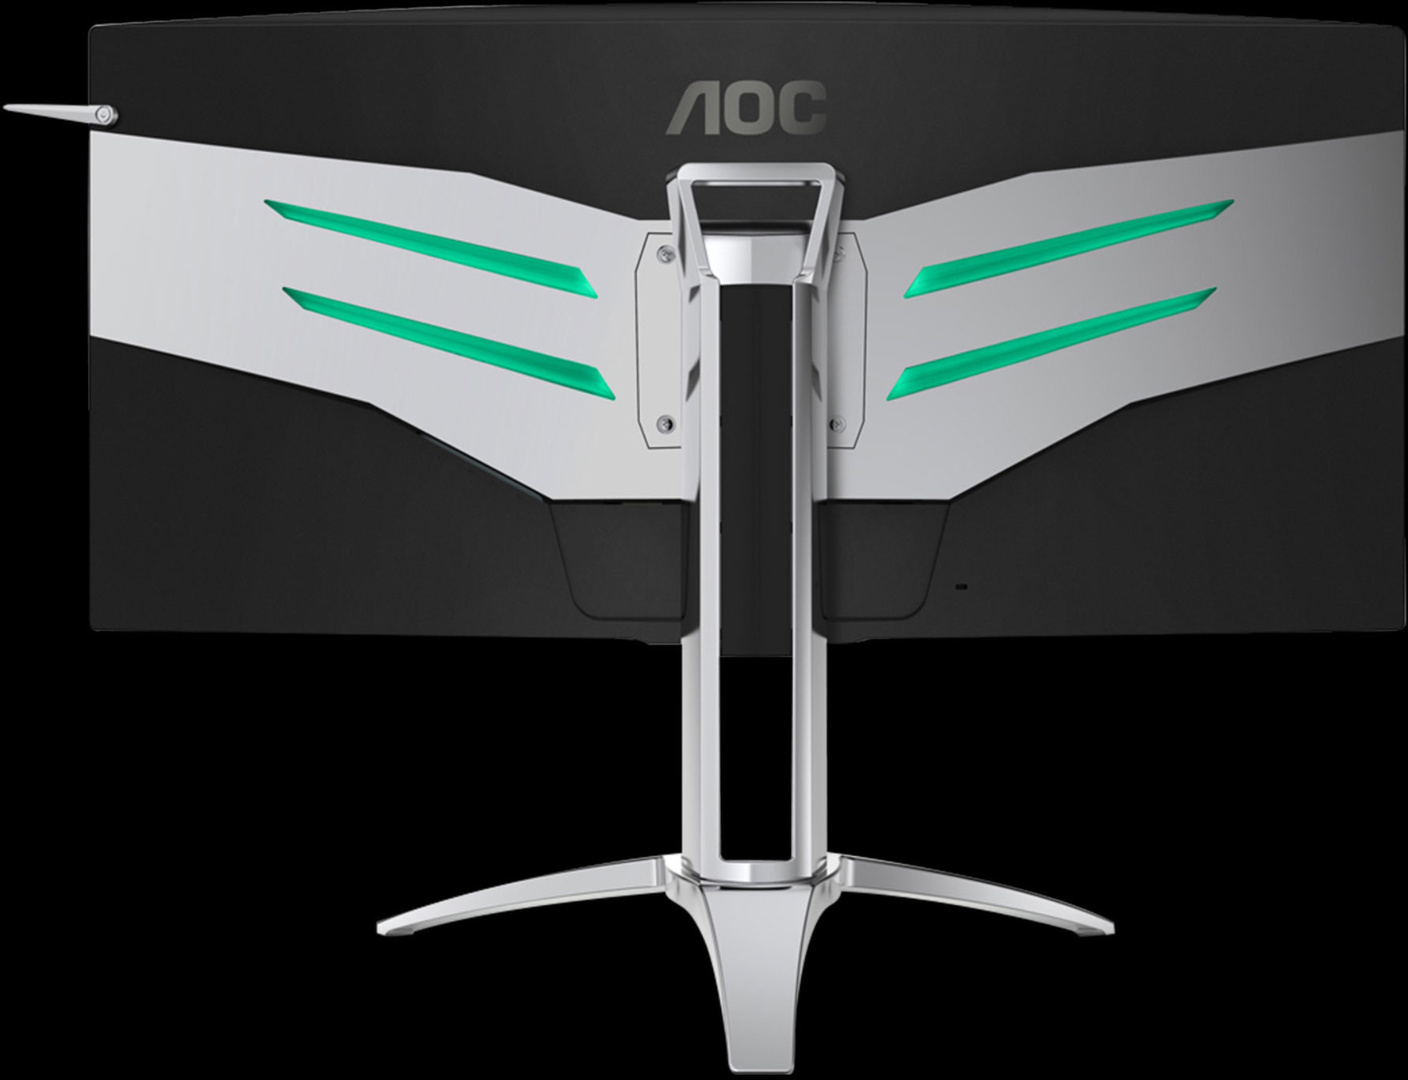 aoc agon ag352ucg6 black edition. ultra-wide on steroids